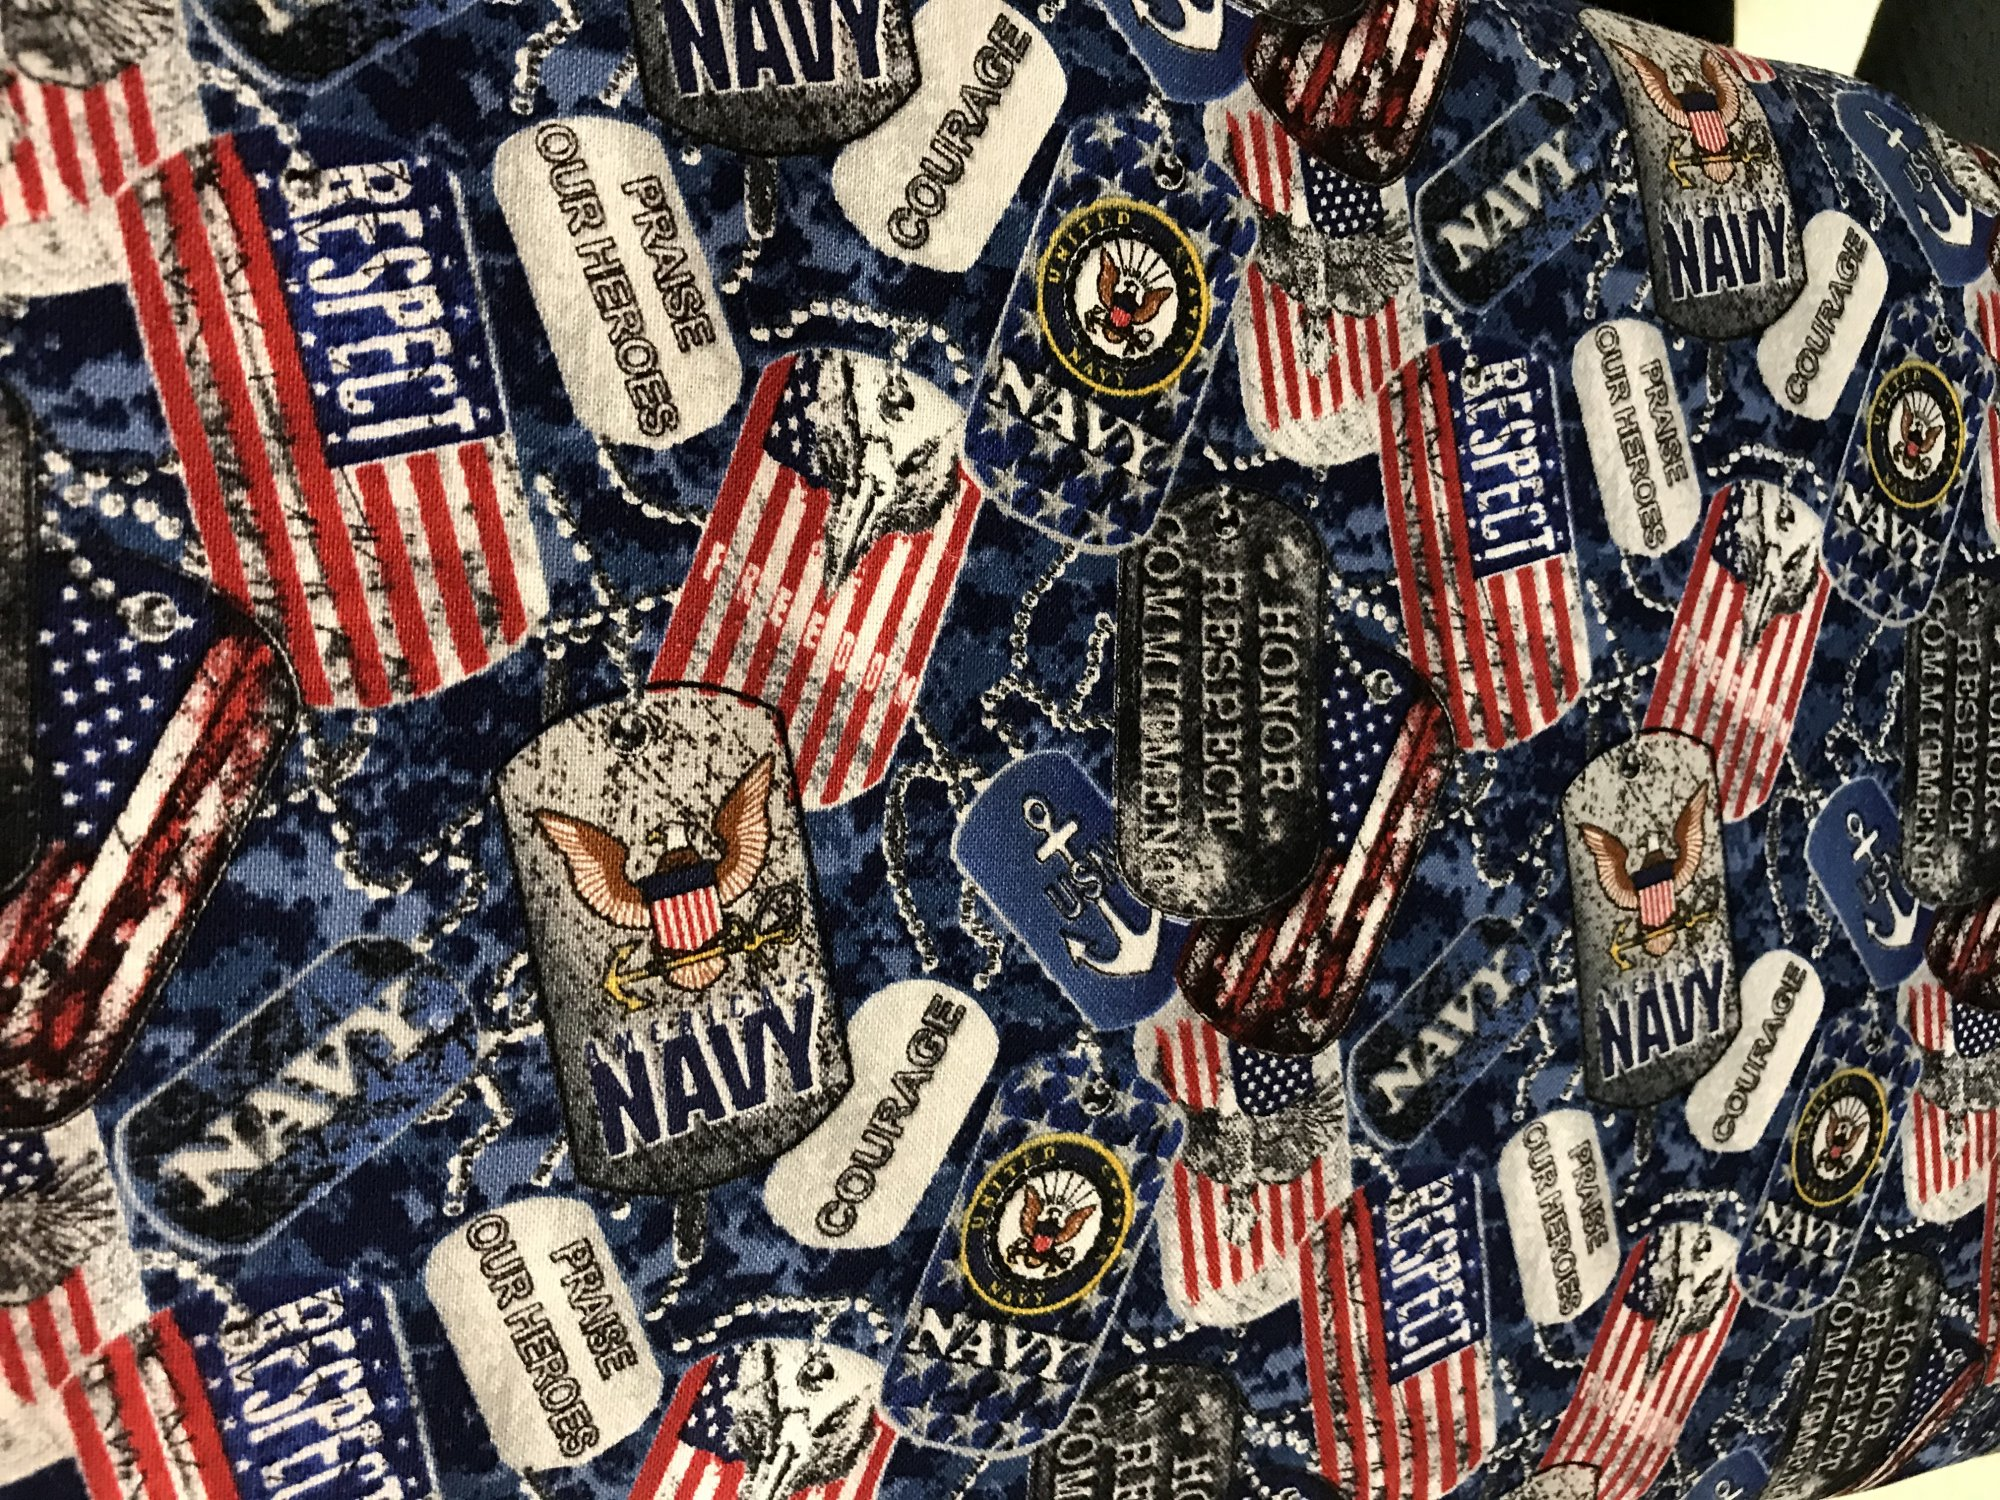 MILITARY COTTON DOGTAGS NAVY 1254N